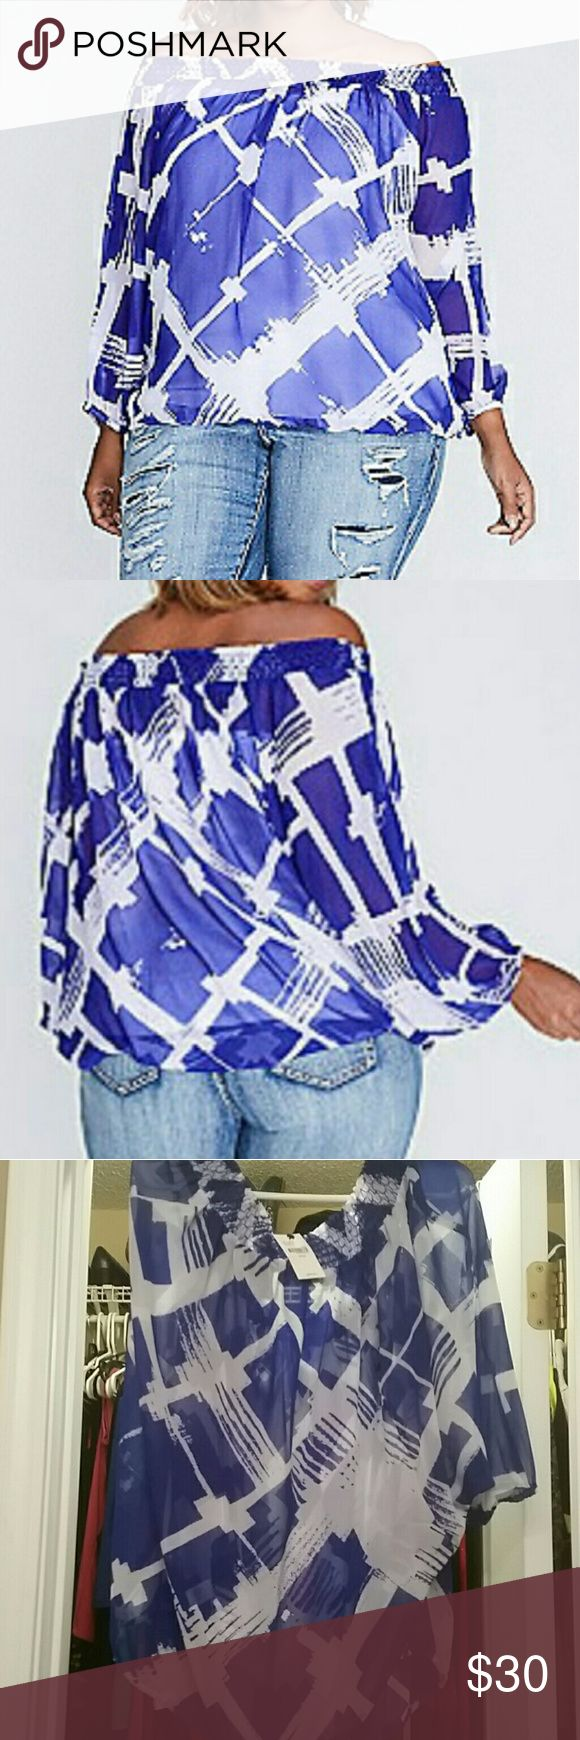 Lane Bryant blue white printed off shoulder top New with tags  Size 14/16  Sold out online This top will need an under shirt as it is see through.  dolman sleeves and elastic hem create a beautiful blouson (i.e., blousey) effect. But the real star? The off-the-shoulder silhouette. And that print. Smocked elastic neckline. Elastic sleeves and hem. Lane Bryant Tops Blouses